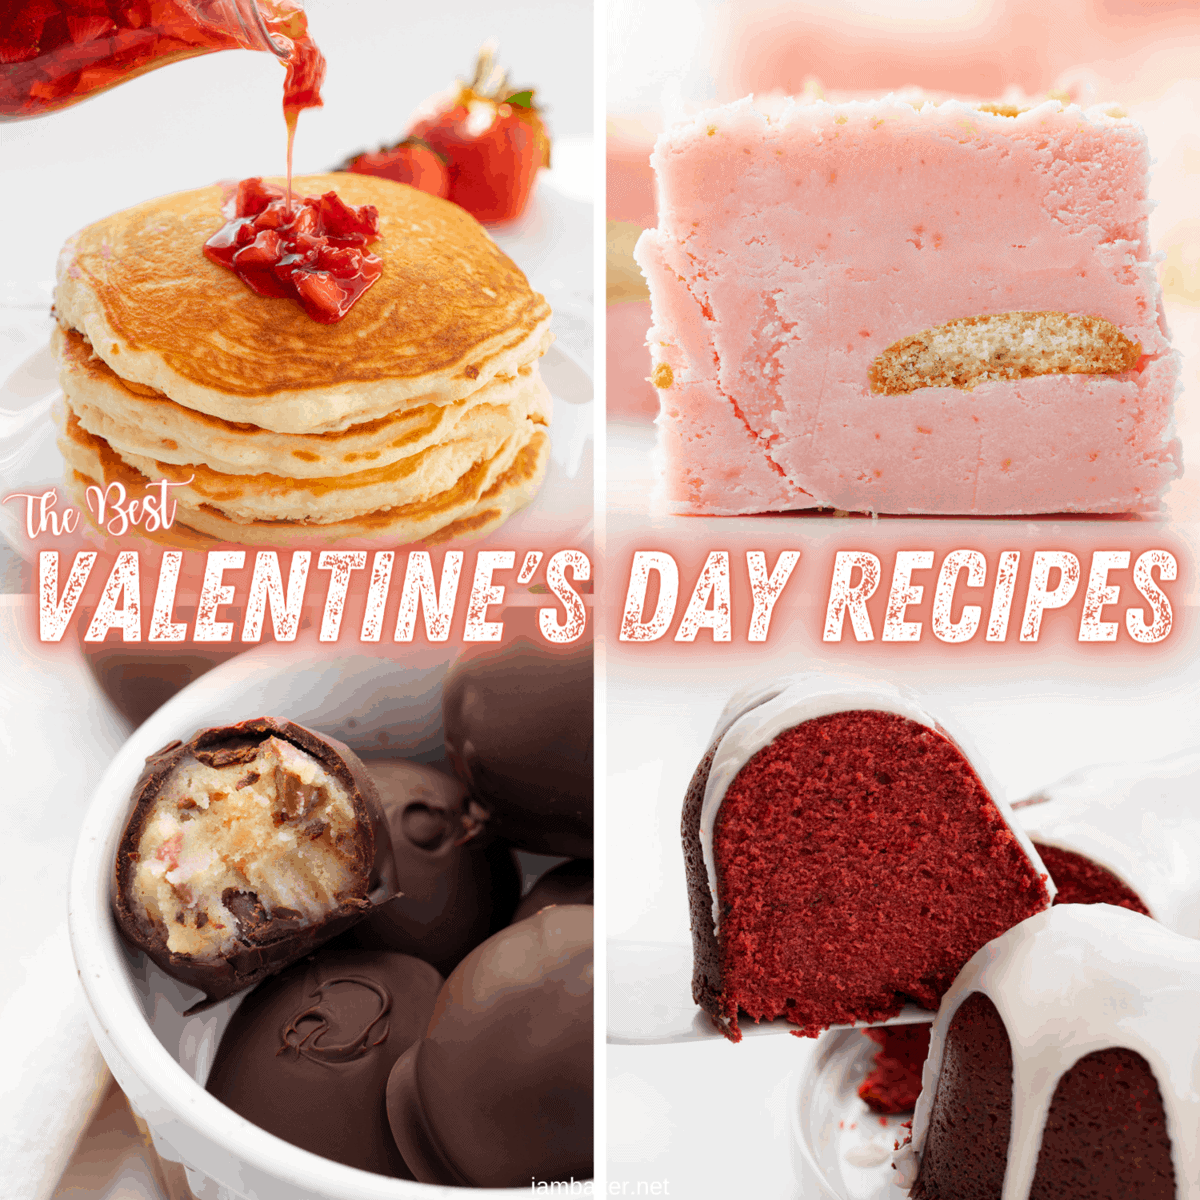 A Variety of Valentines Day Recipes